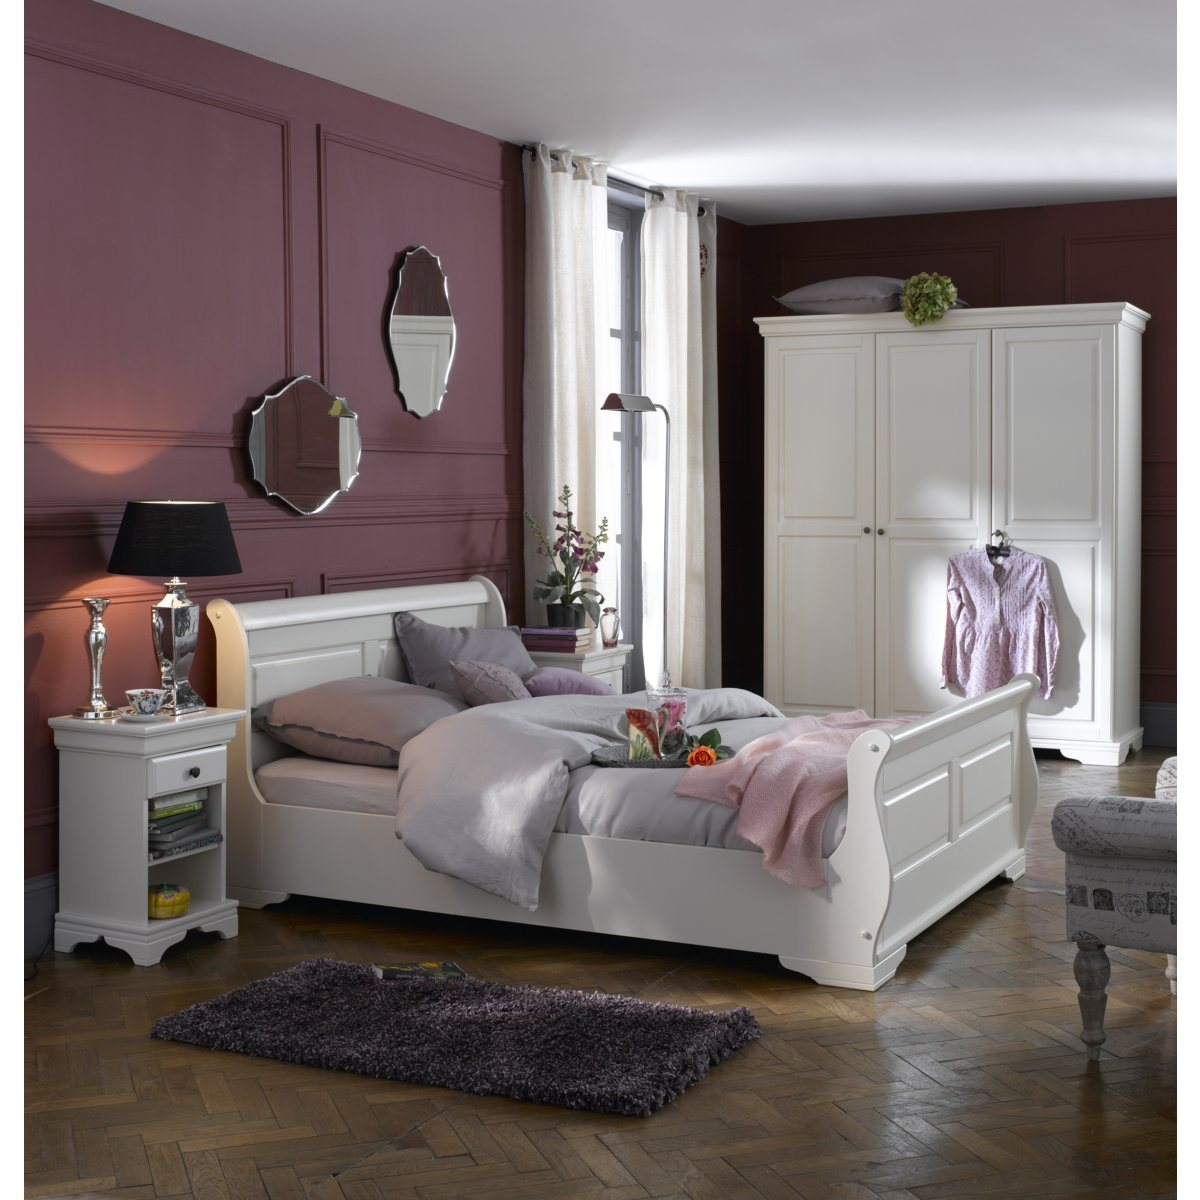 la chambre literie couleurs mobilier canape deco. Black Bedroom Furniture Sets. Home Design Ideas